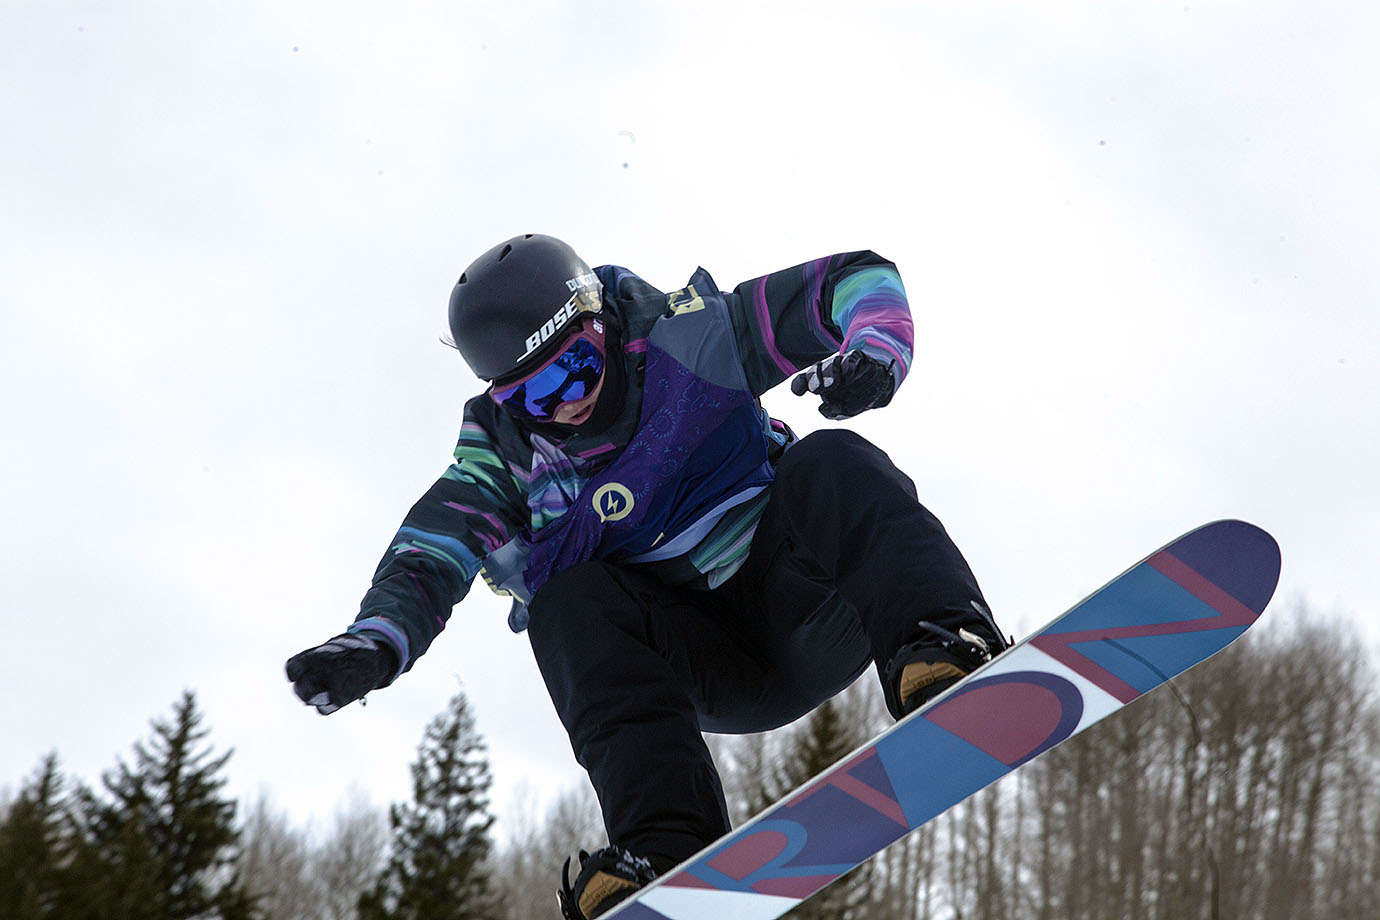 Kelly Clark has come out of the Burton U.S. Open Superpipe a winner eight times in her illustrious career, but she settled for third over the weekend.